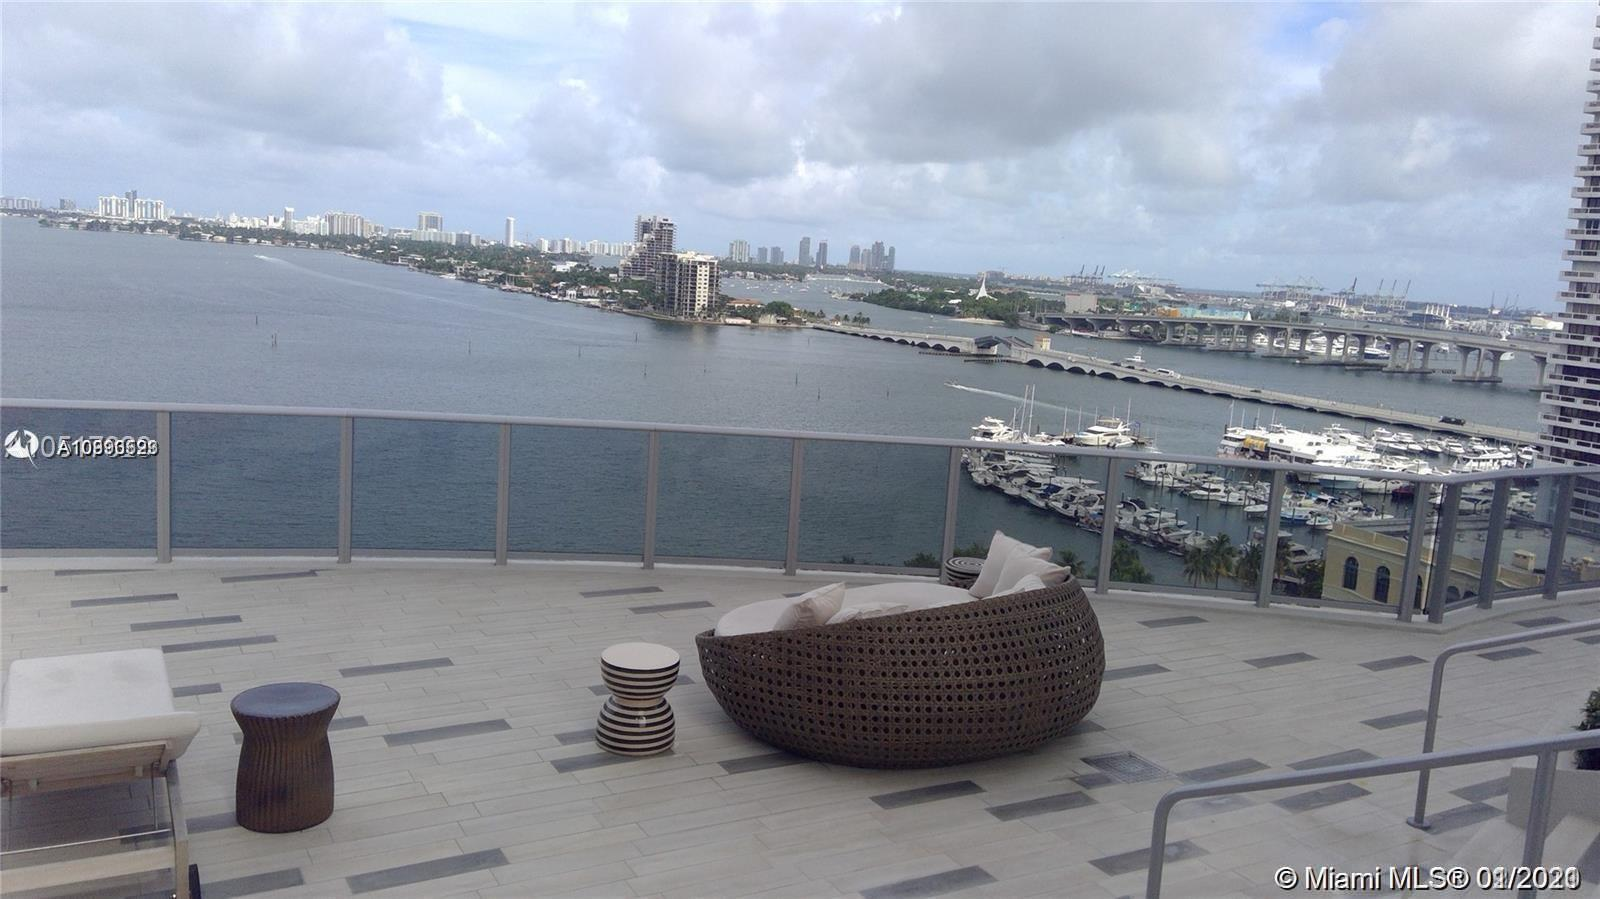 Spectacular View to the Bay, 1 Bed + DEN + 2 Full Baths with big Balcony, New Luxurious Building. Hi